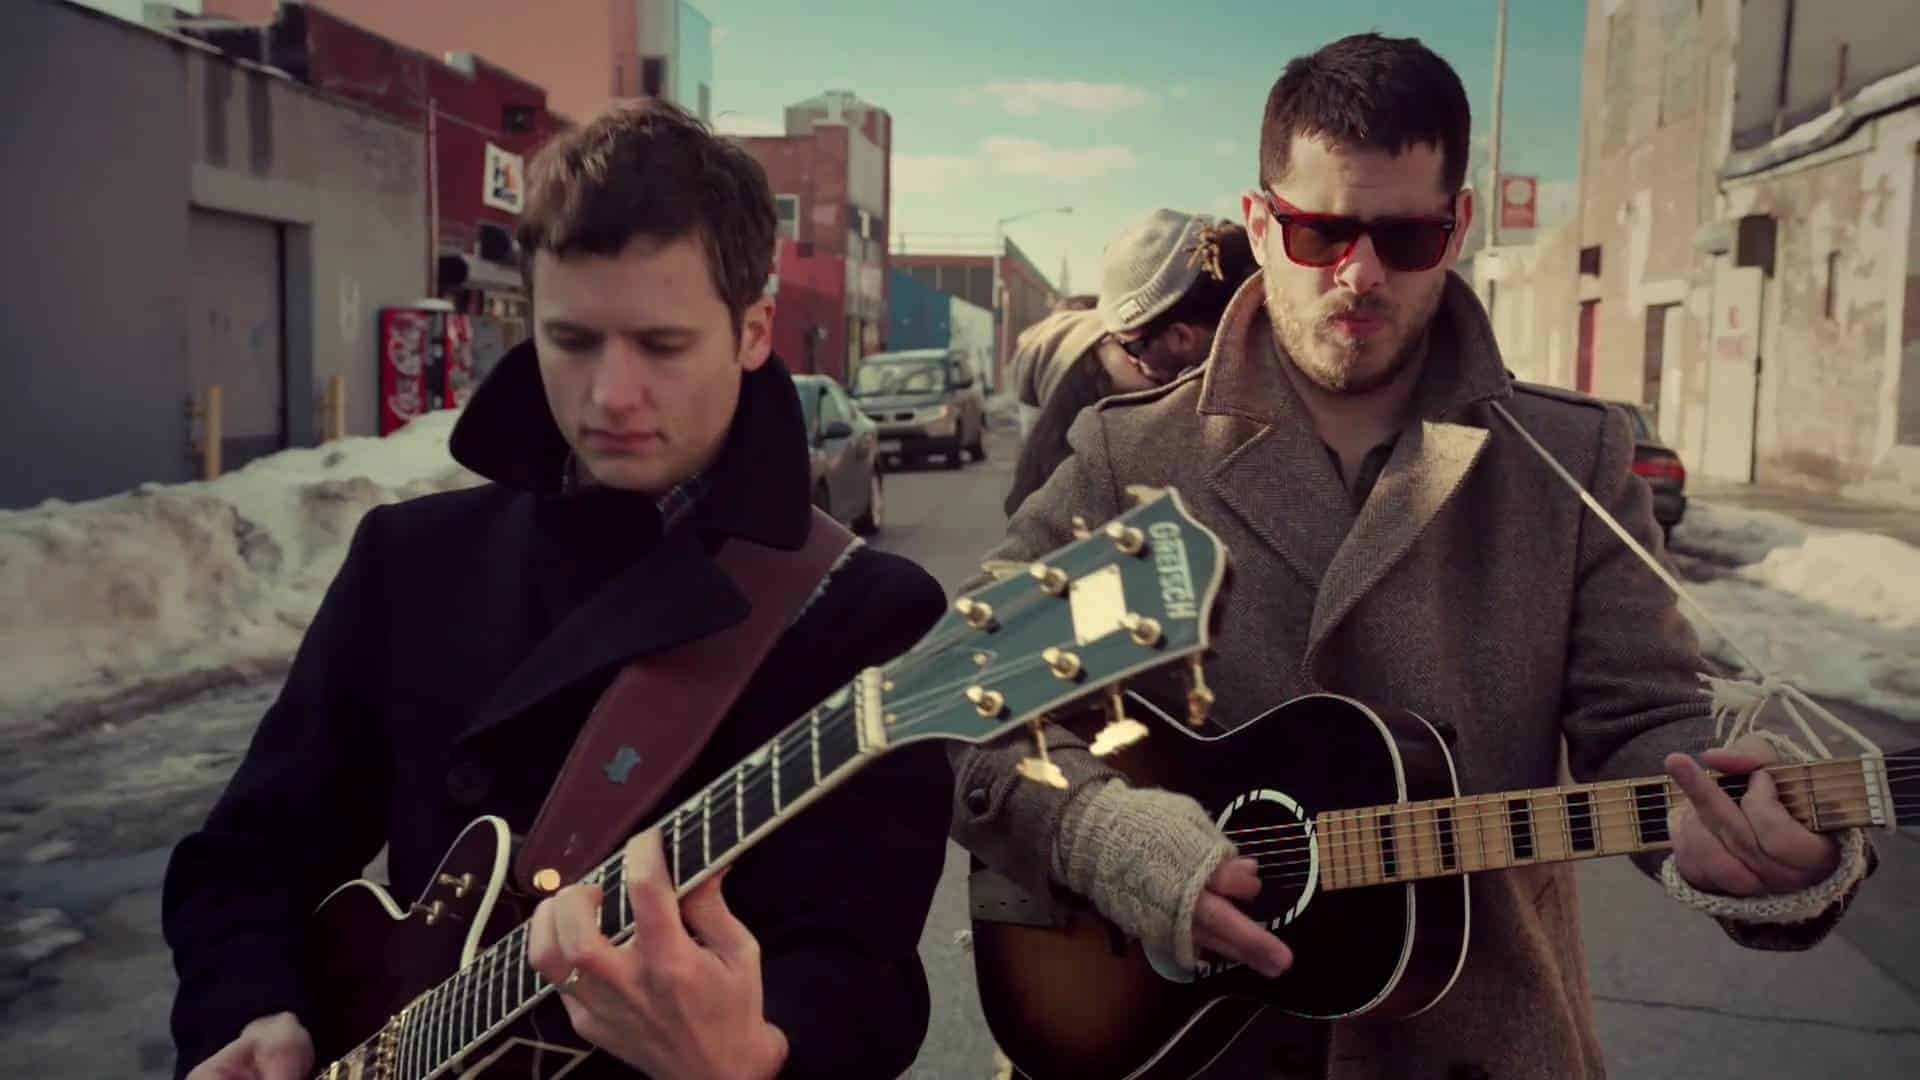 We Are Augustines - Chapel Song photo